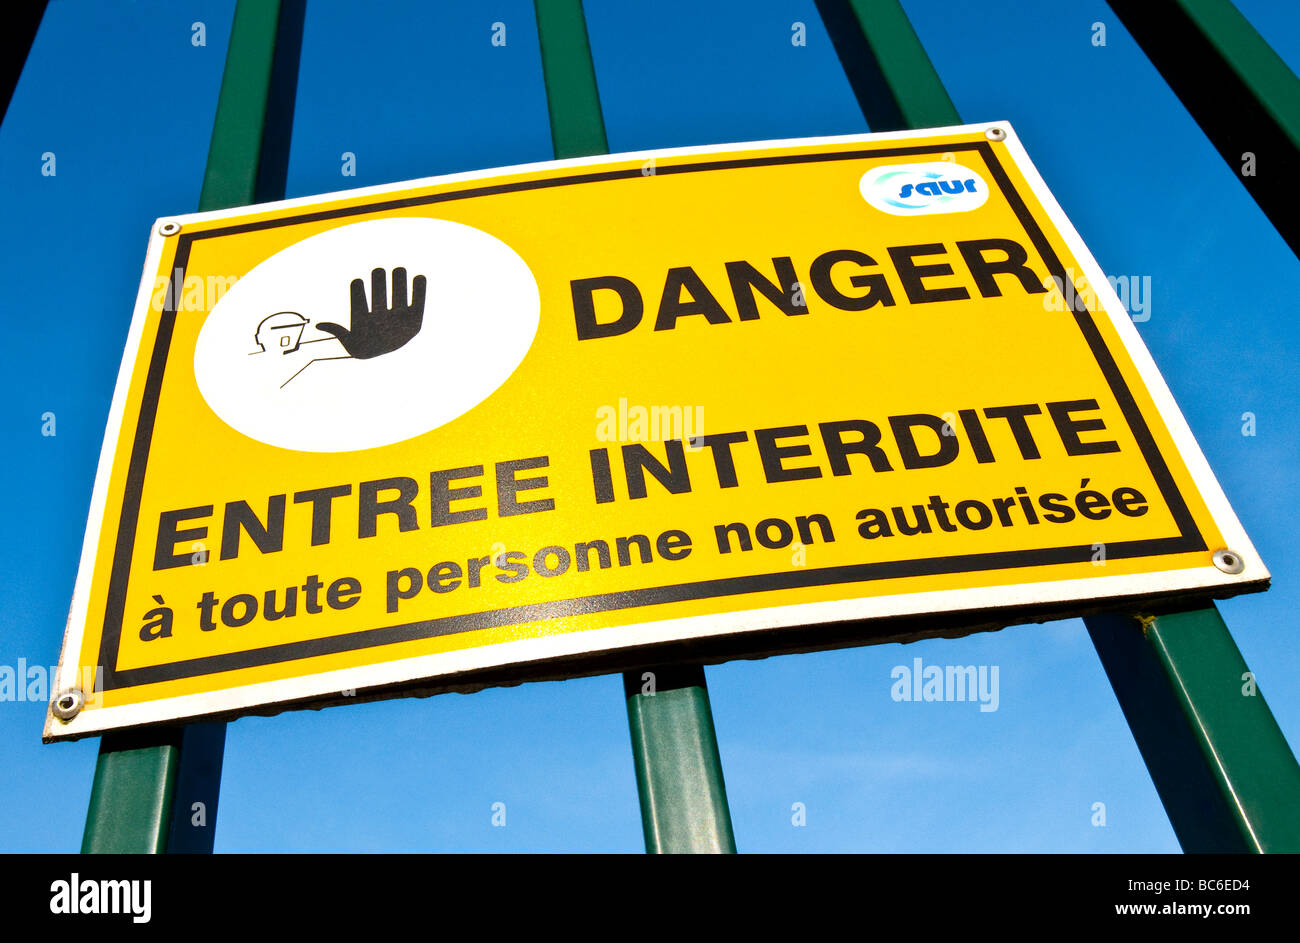 Public access forbidden warning notice on French water treatment plant - Indre-et-Loire, France. - Stock Image